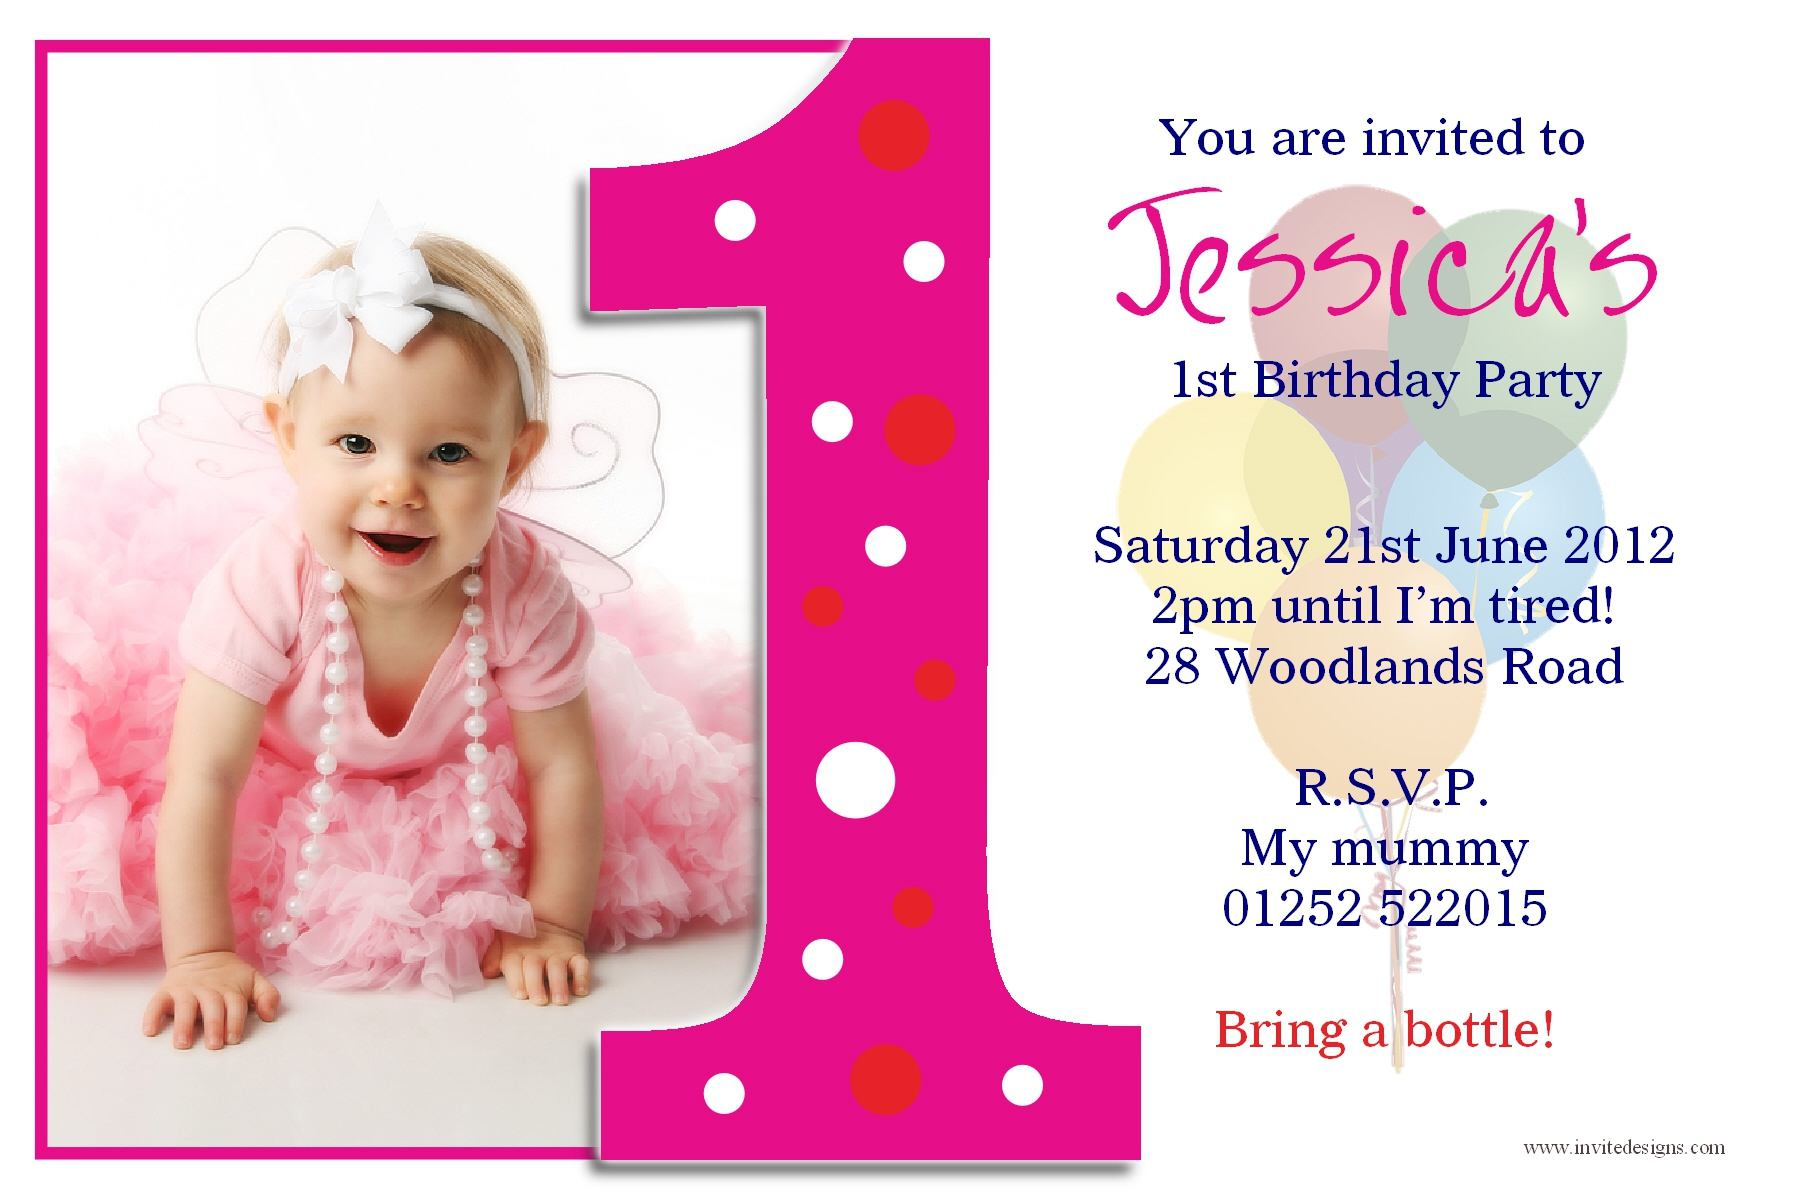 free online birthday invitation card maker with photo ; online-birthday-invitation-card-maker-best-of-1st-birthday-invitation-card-maker-of-online-birthday-invitation-card-maker